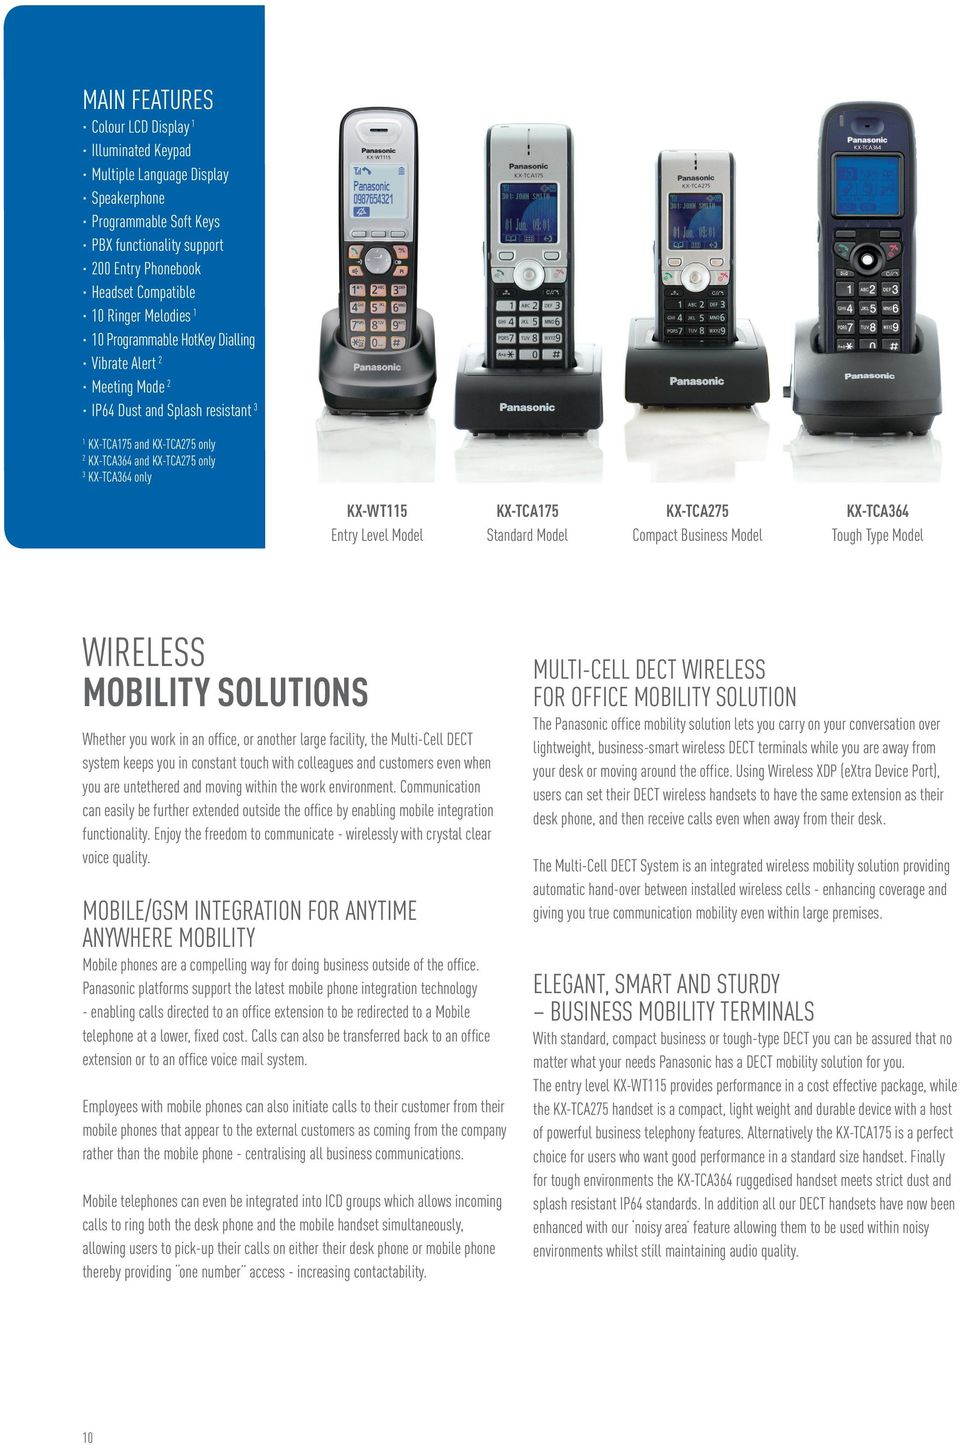 Model KX-TCA175 Standard Model KX-TCA275 Compact Business Model KX-TCA364 Tough Type Model WIRELESS MOBILITY SOLUTIONS Whether you work in an office, or another large facility, the Multi-Cell DECT